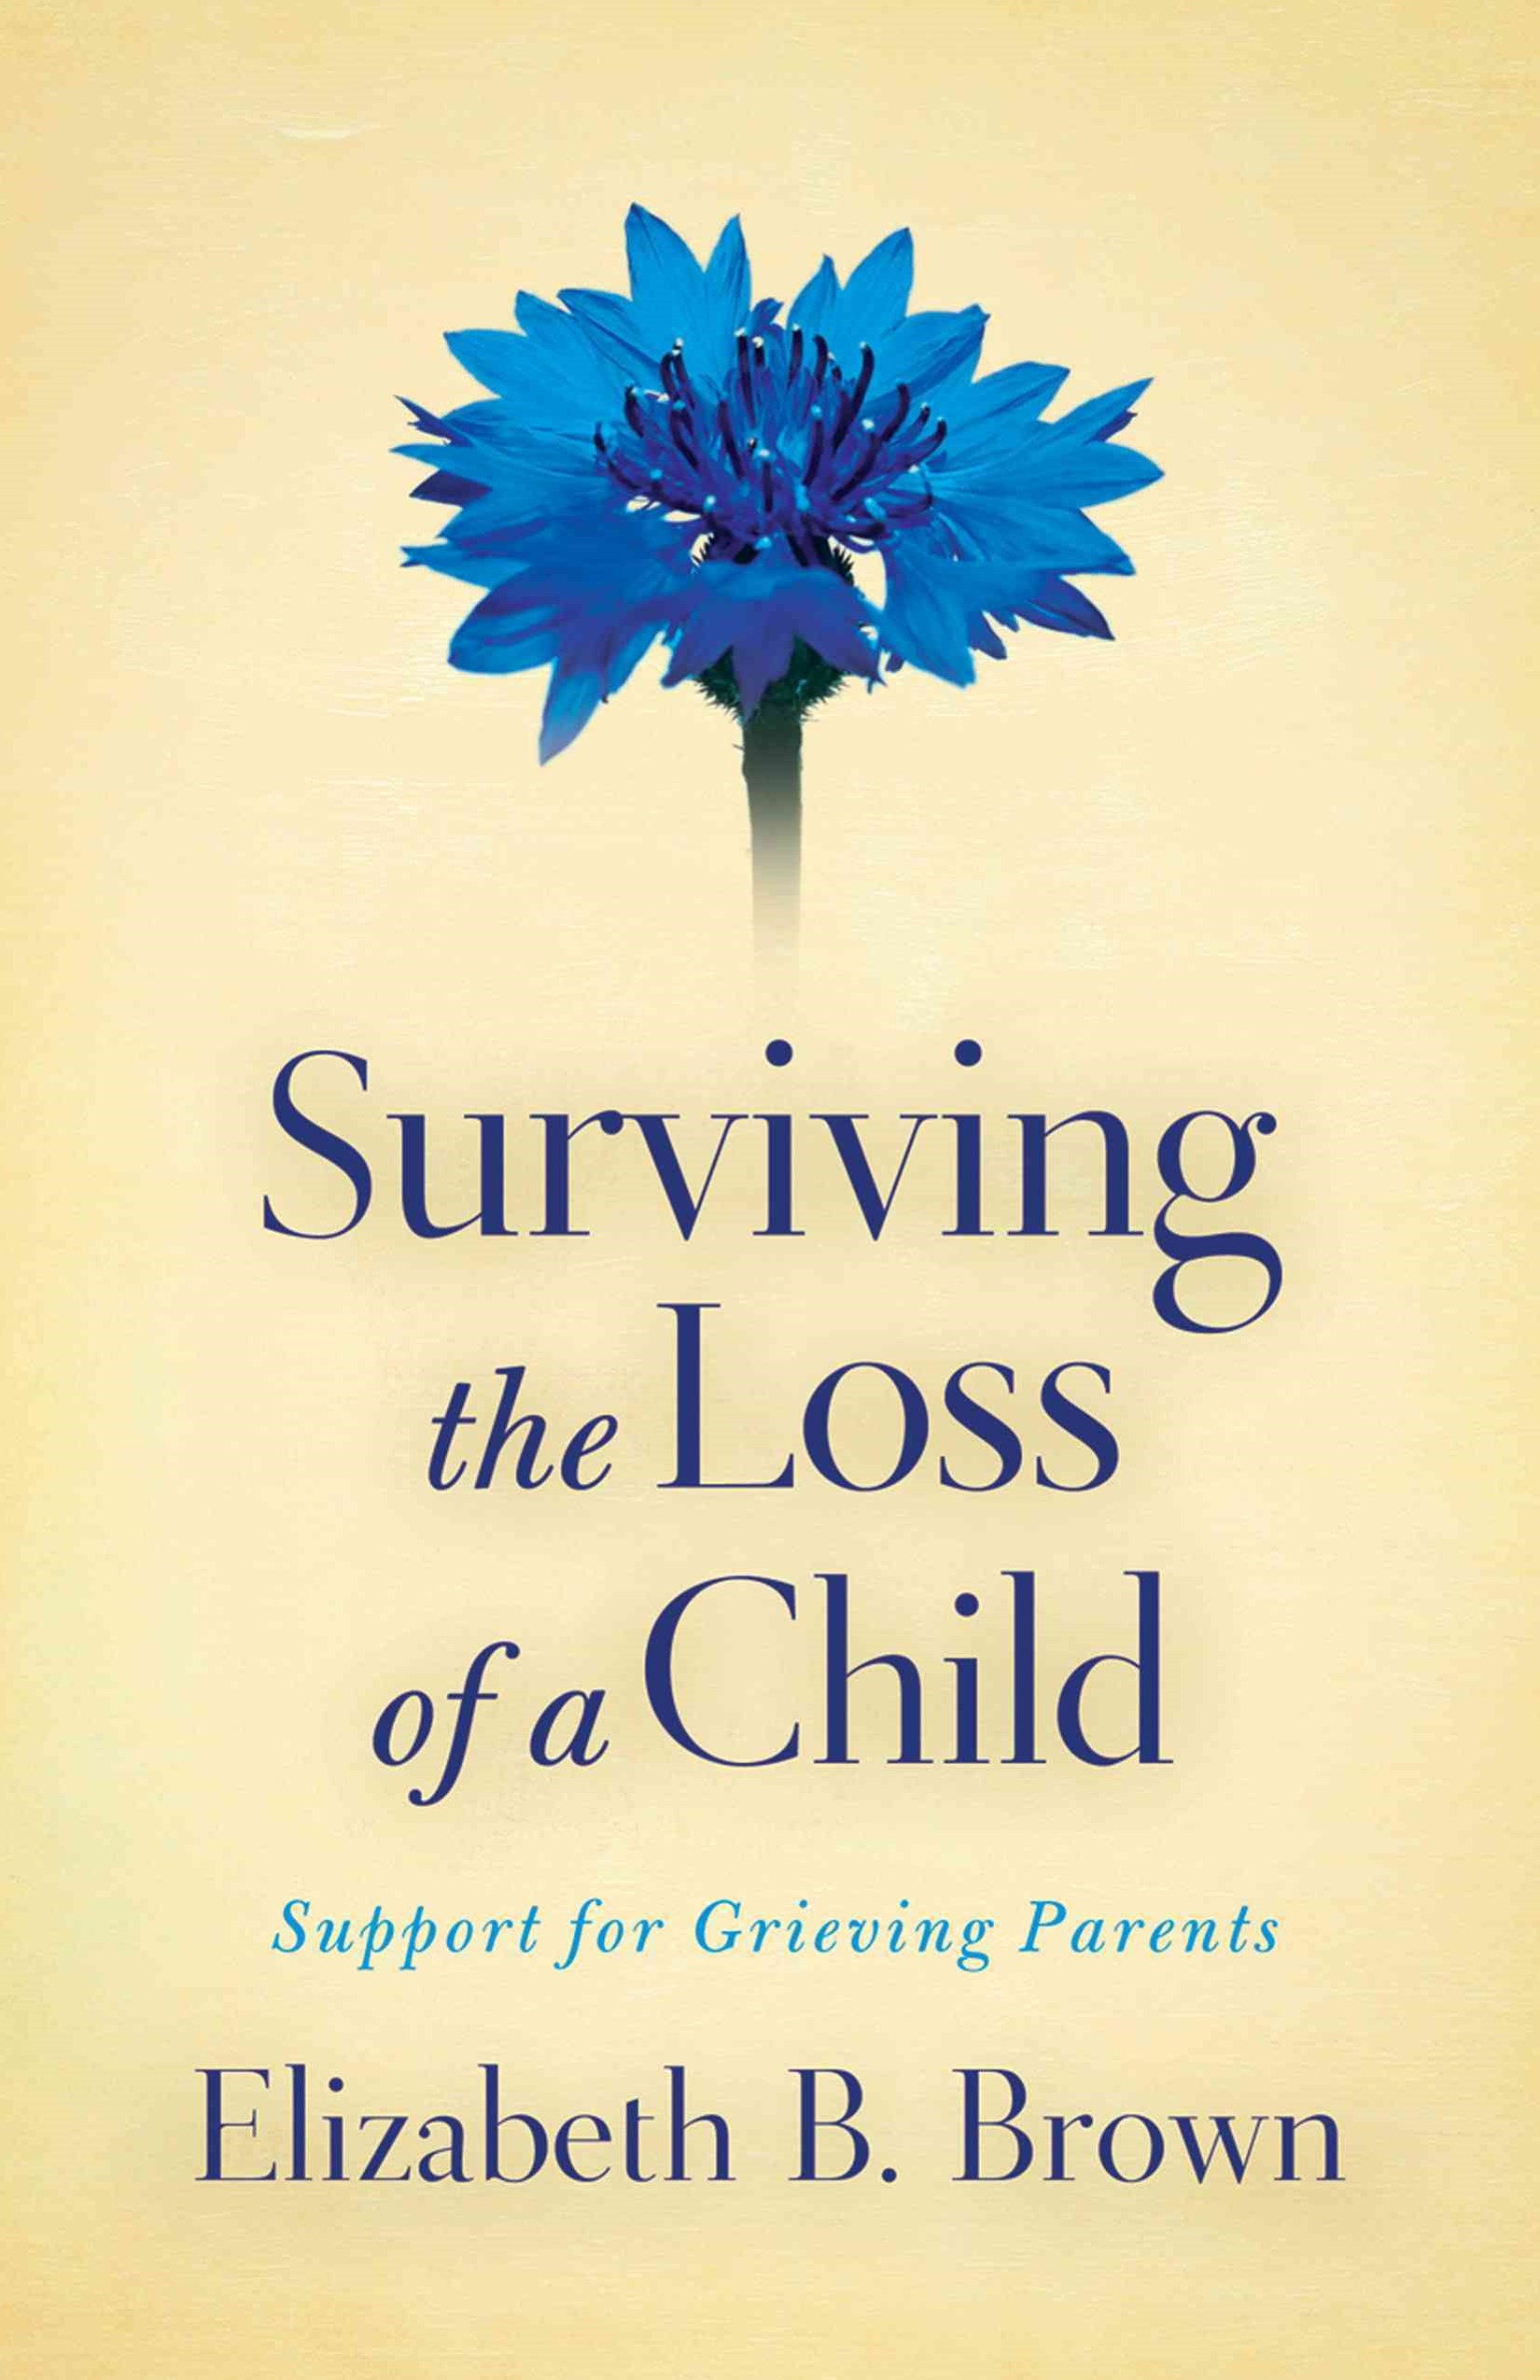 Surviving the Loss of a Child